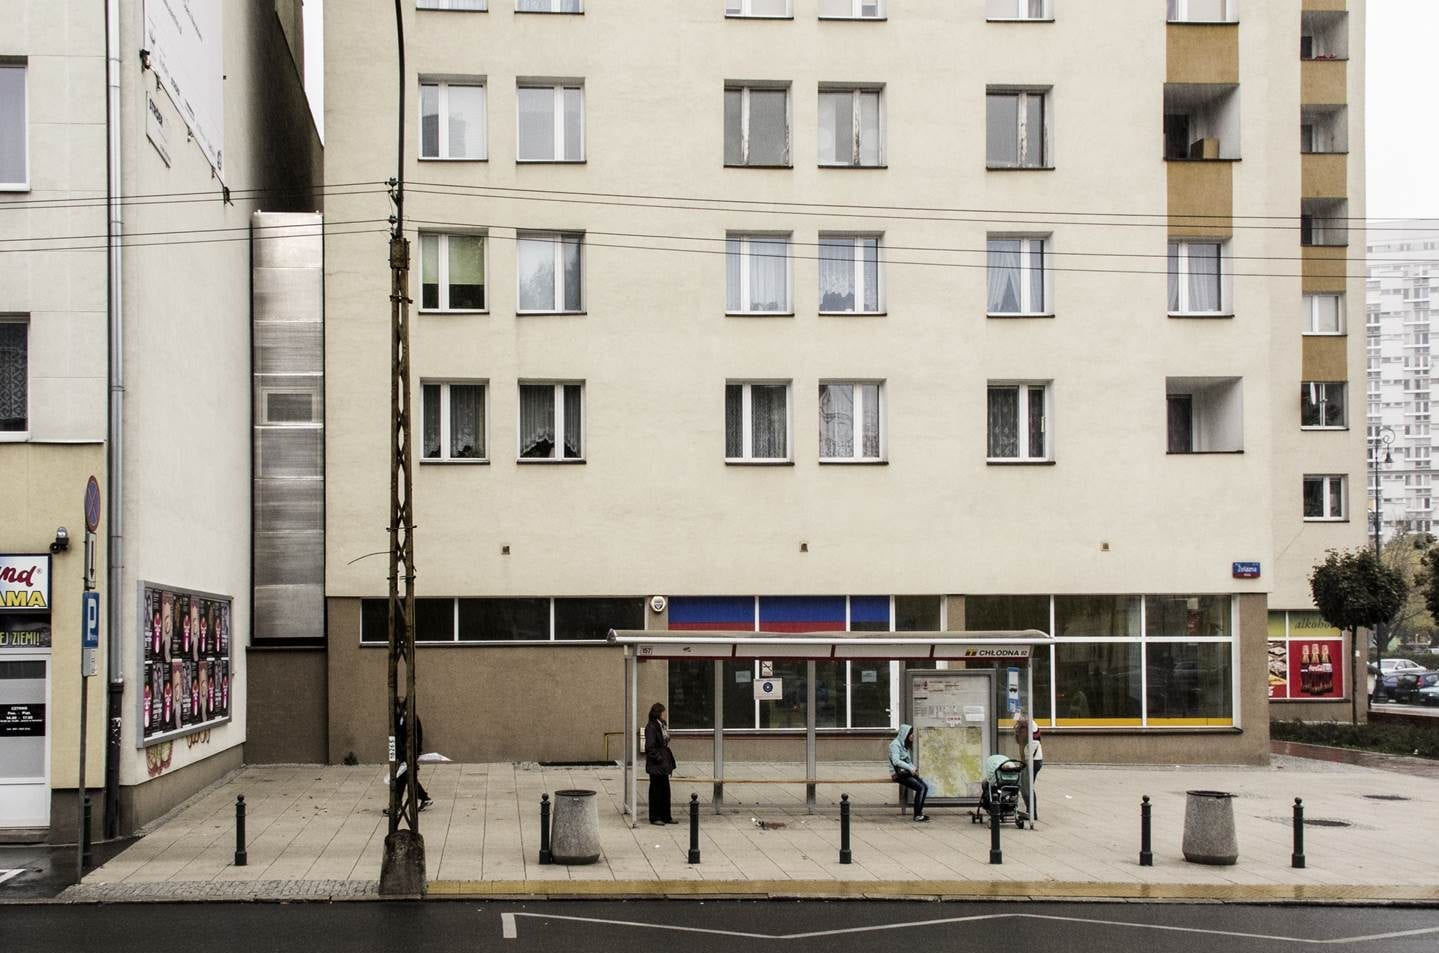 20. Keret House, the street view by Tycjan Gniew Podskarbinski, © Polish Modern Art Foundation (Copy)